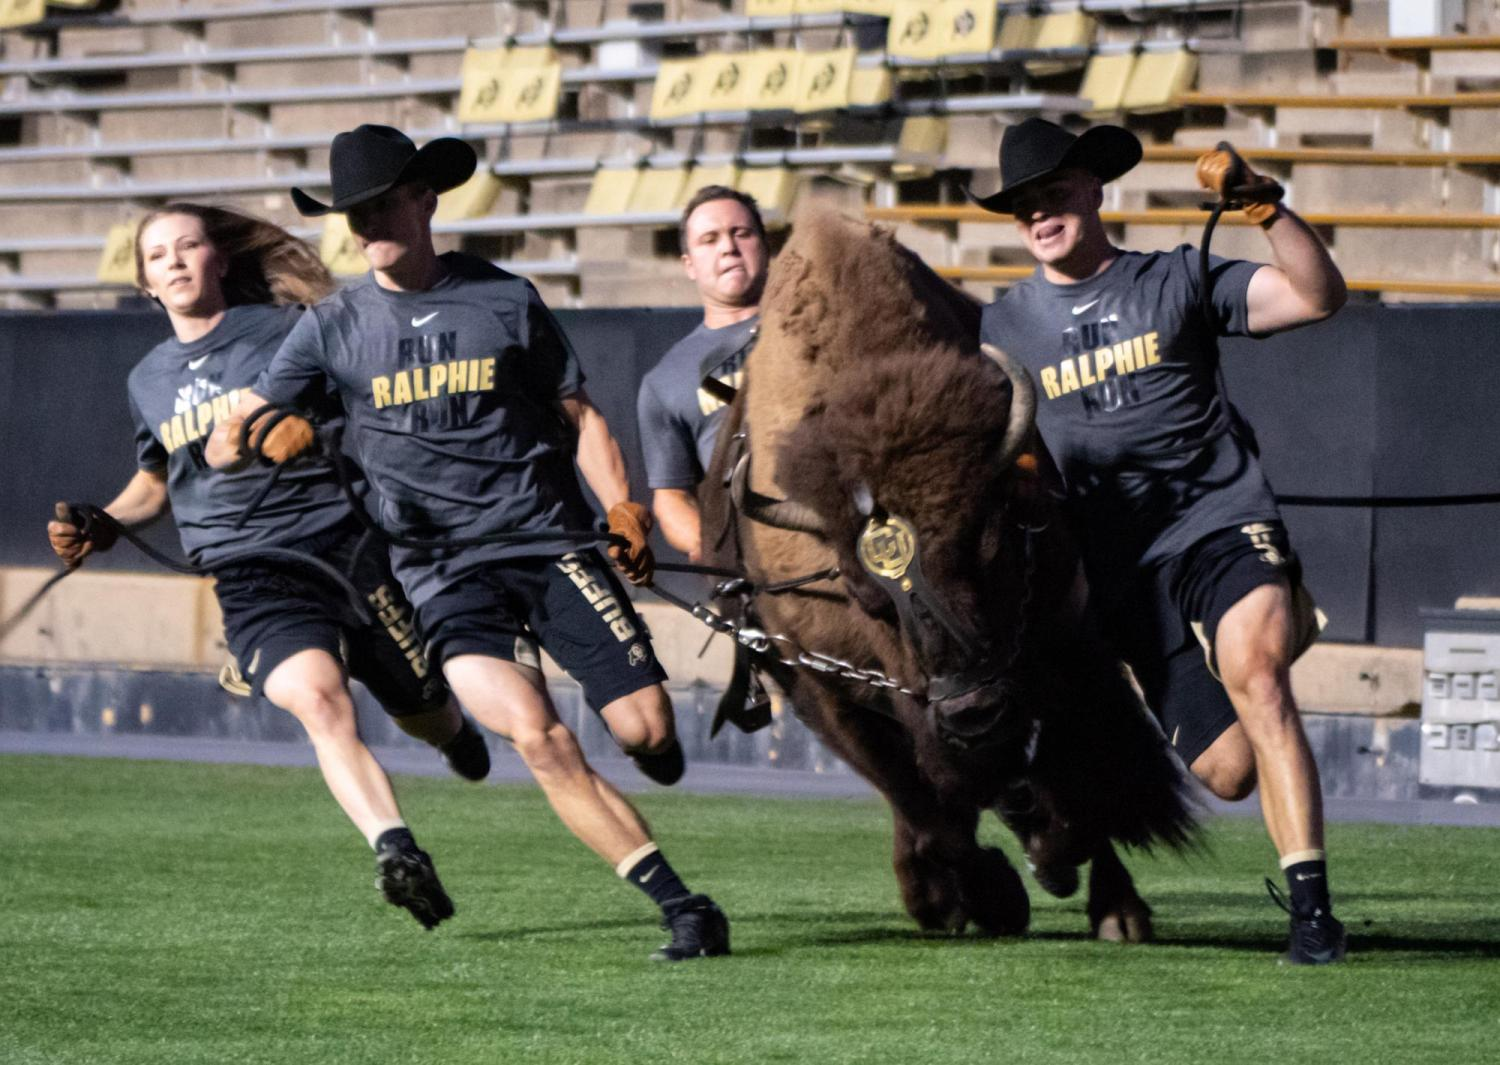 Ralphie running during kickoff